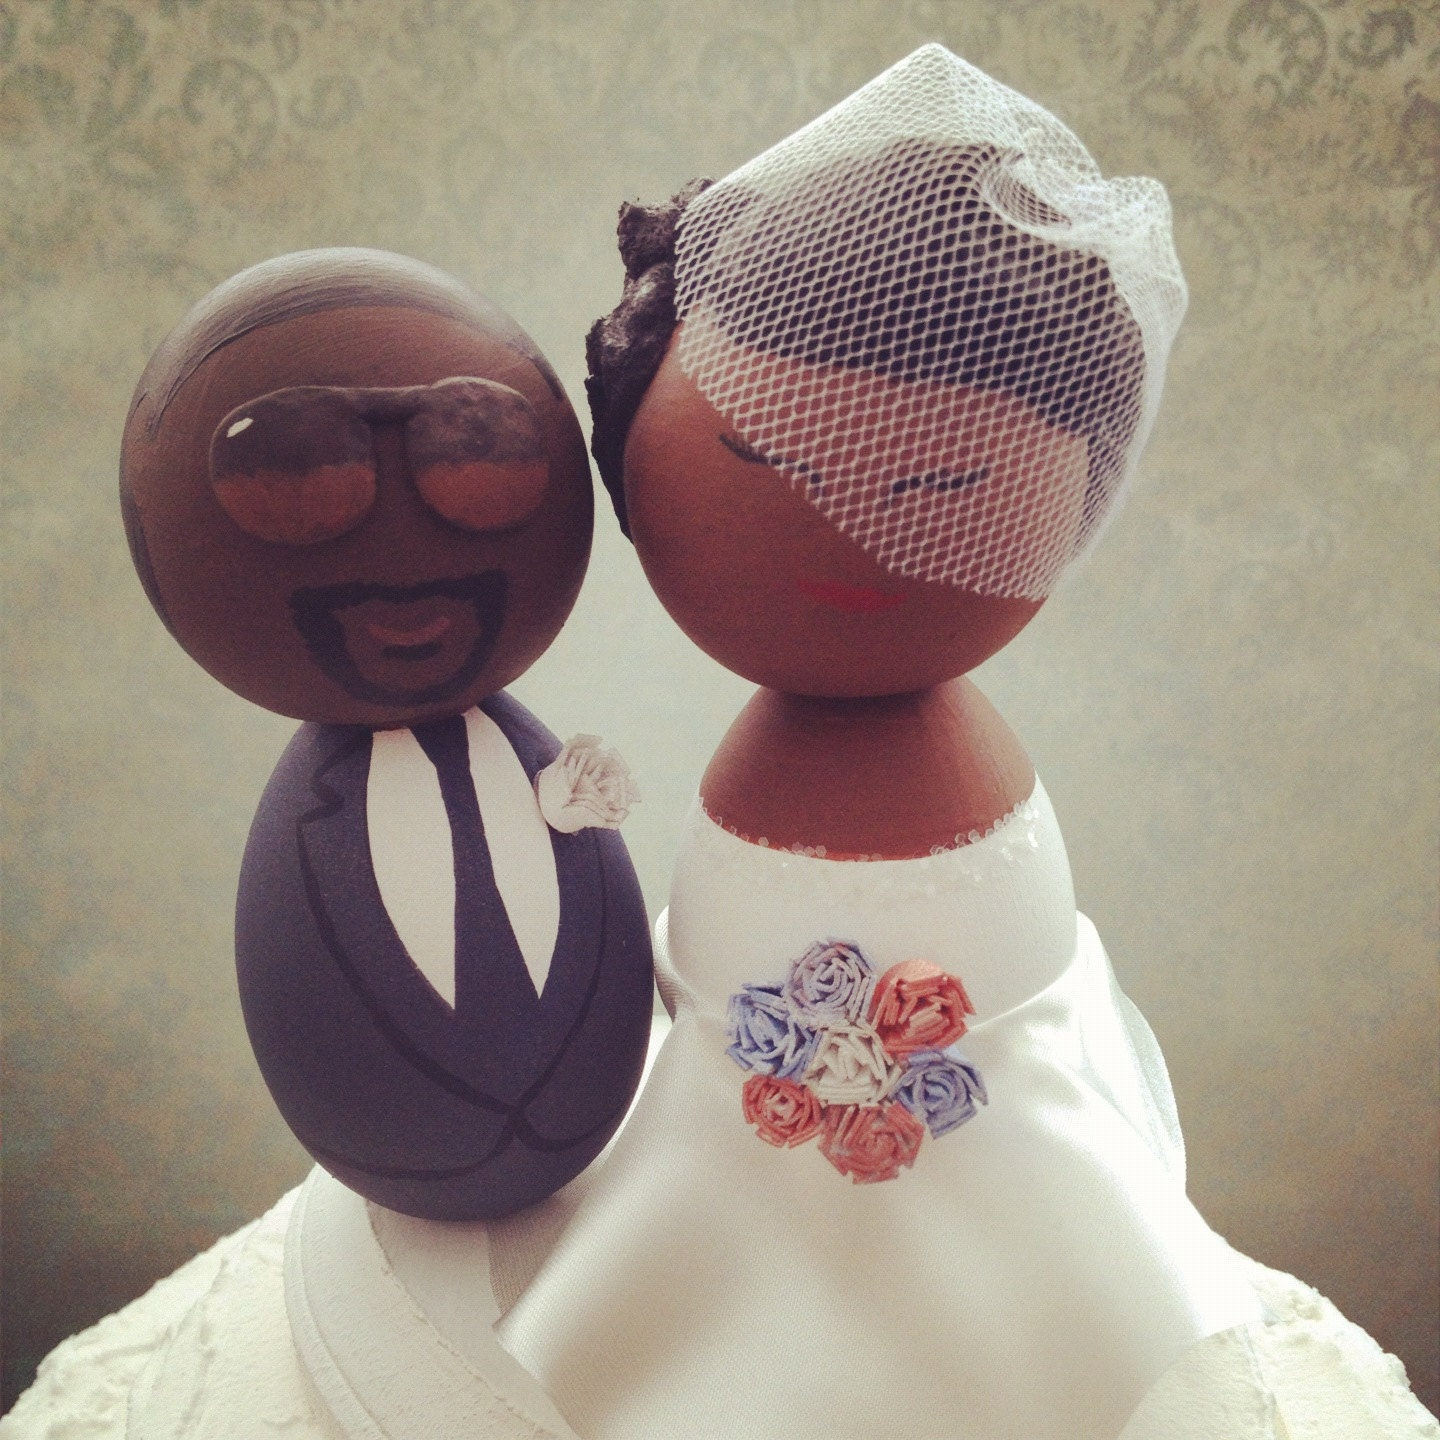 an american wedding cake custom american wedding cake topper every topper is 10747